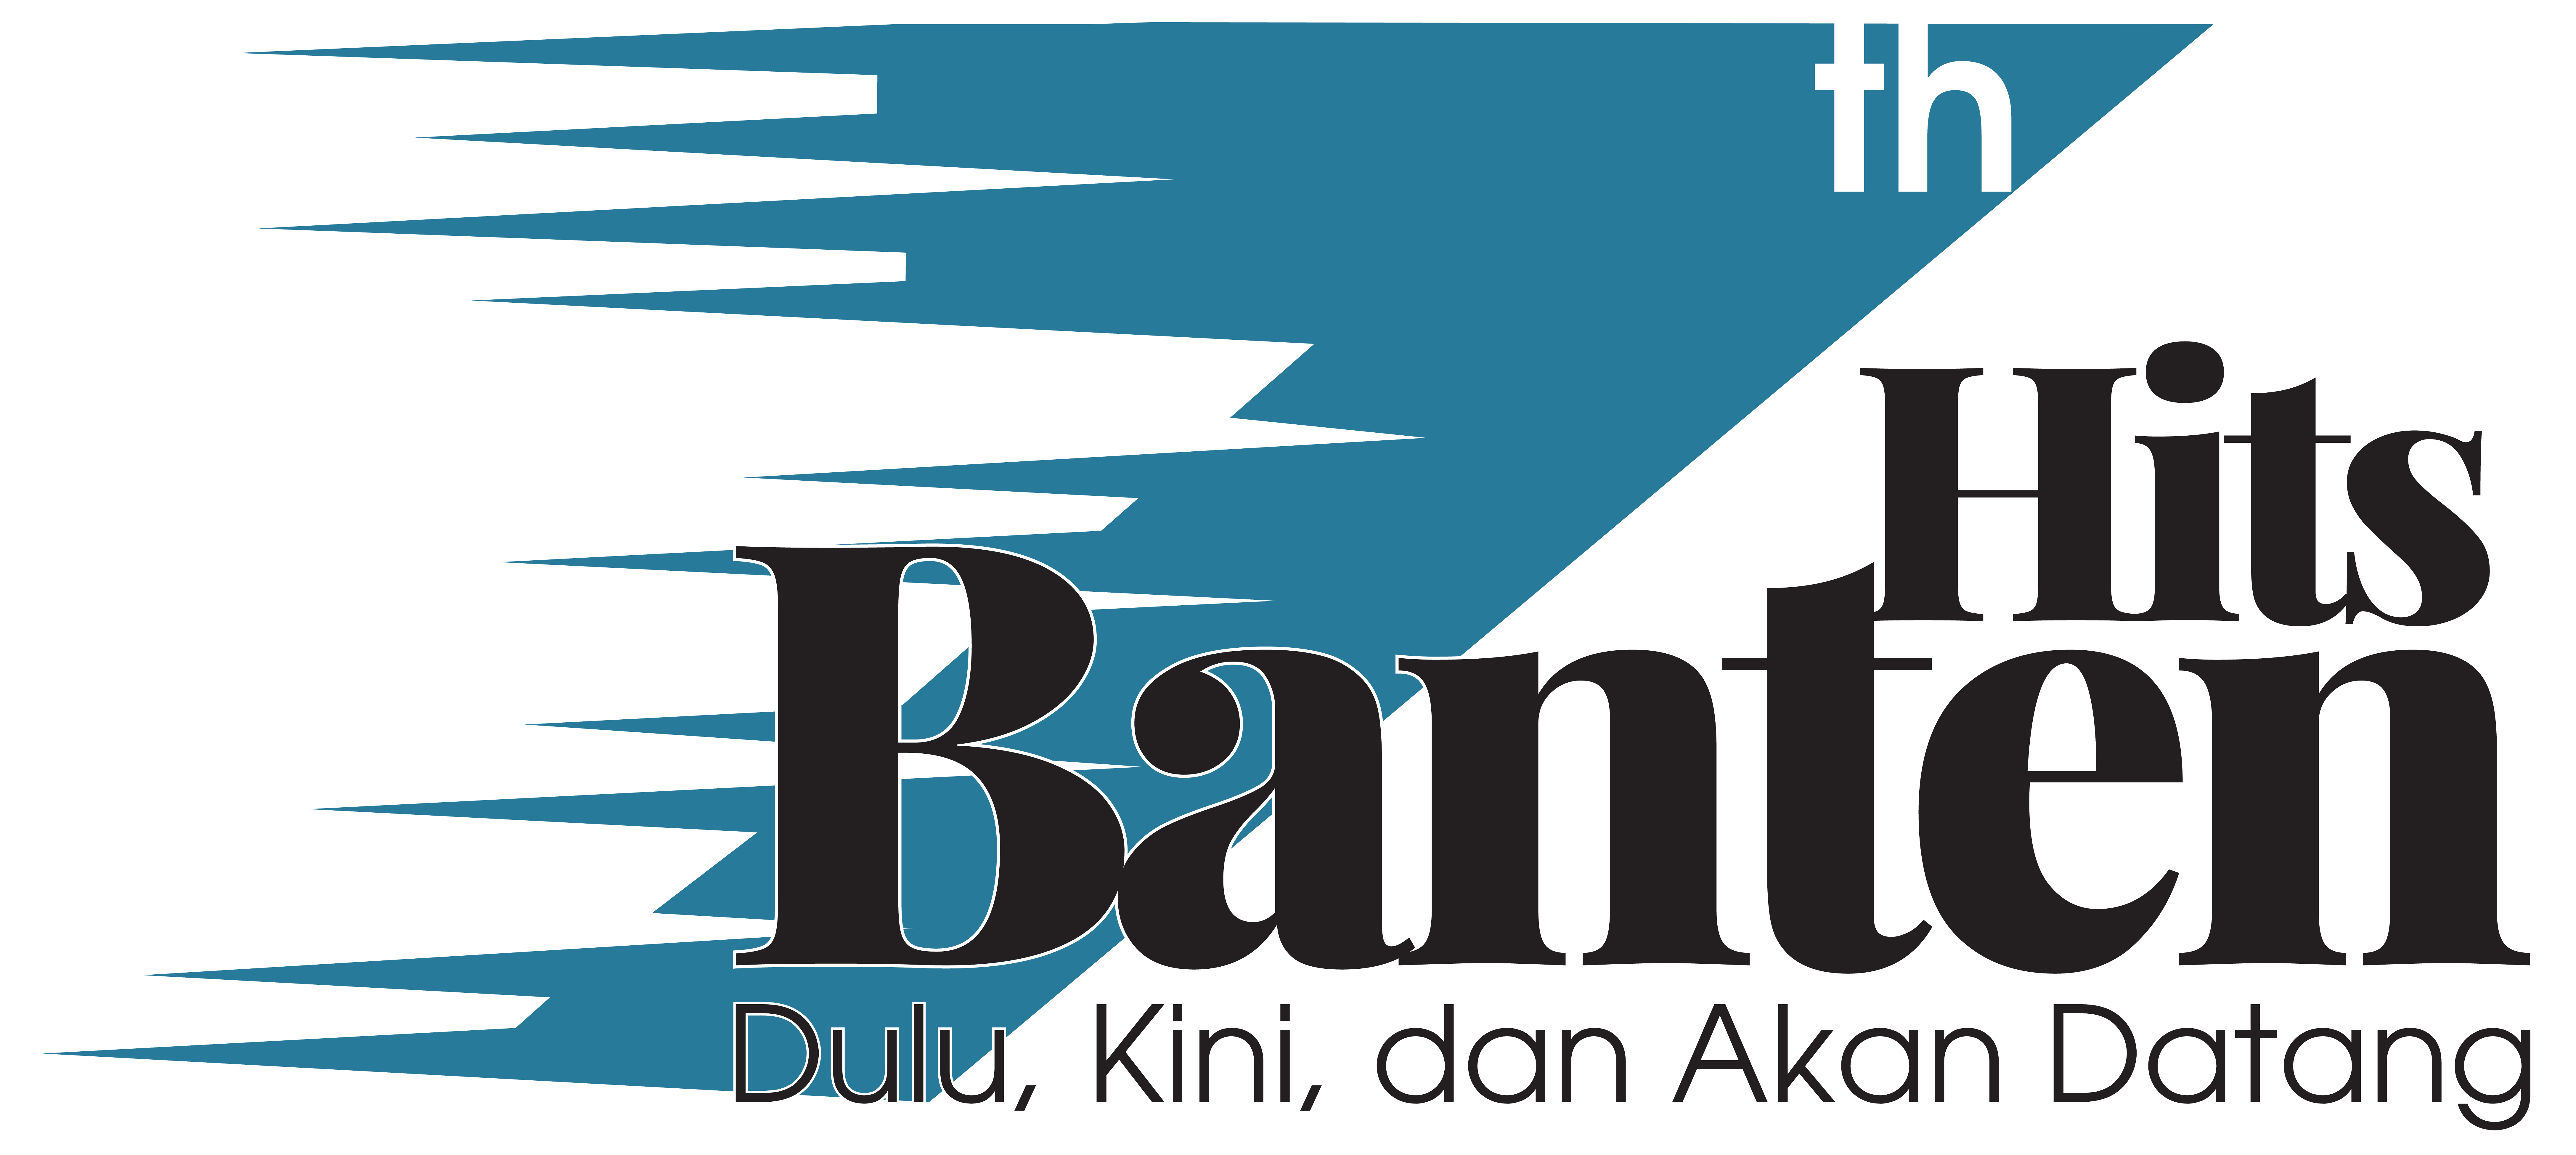 bantenhits